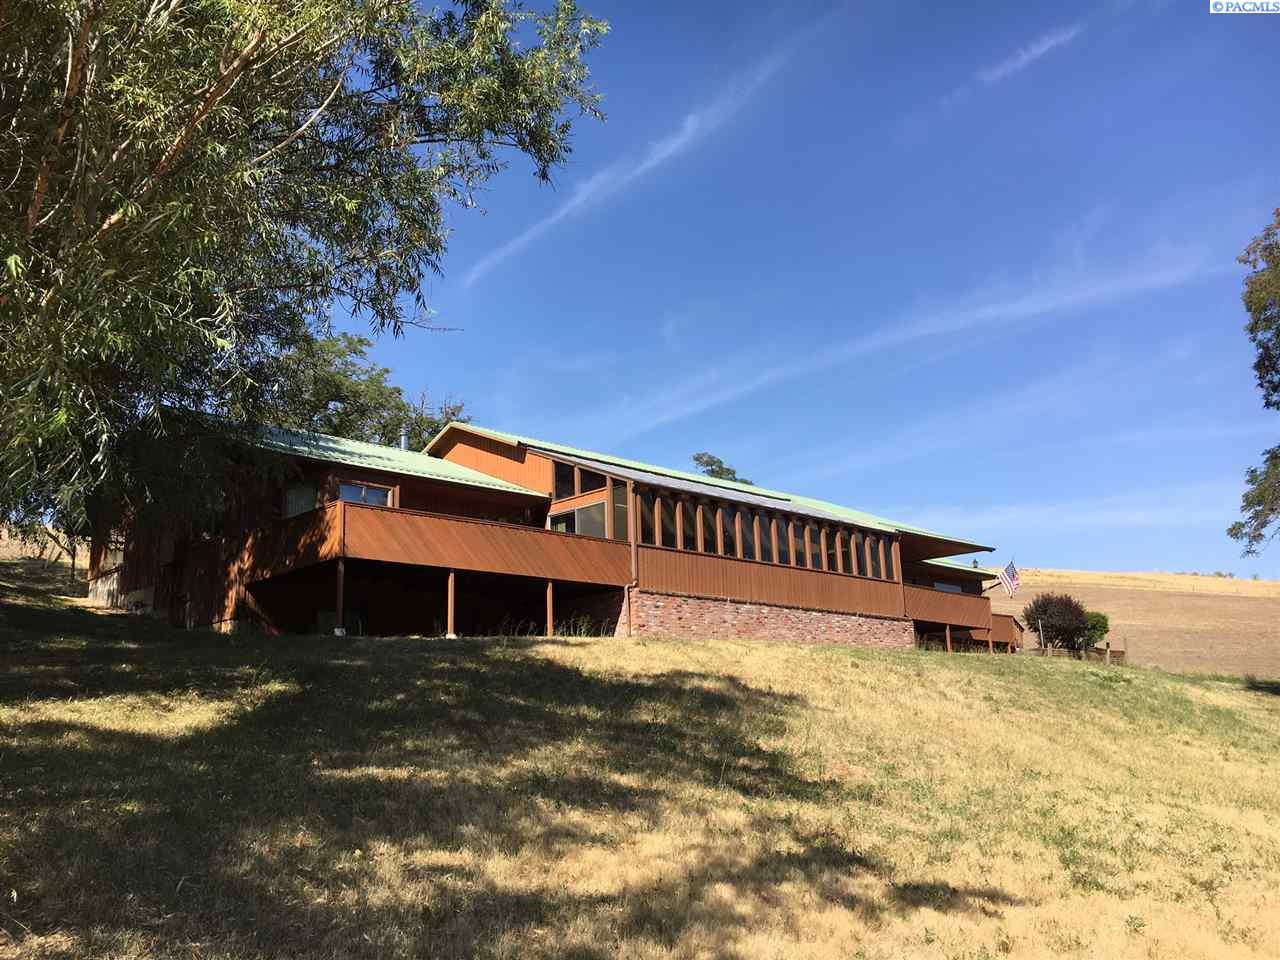 Single Family Home for Sale at 4652 S Palouse River Rd. 4652 S Palouse River Rd. Colfax, Washington 99111 United States